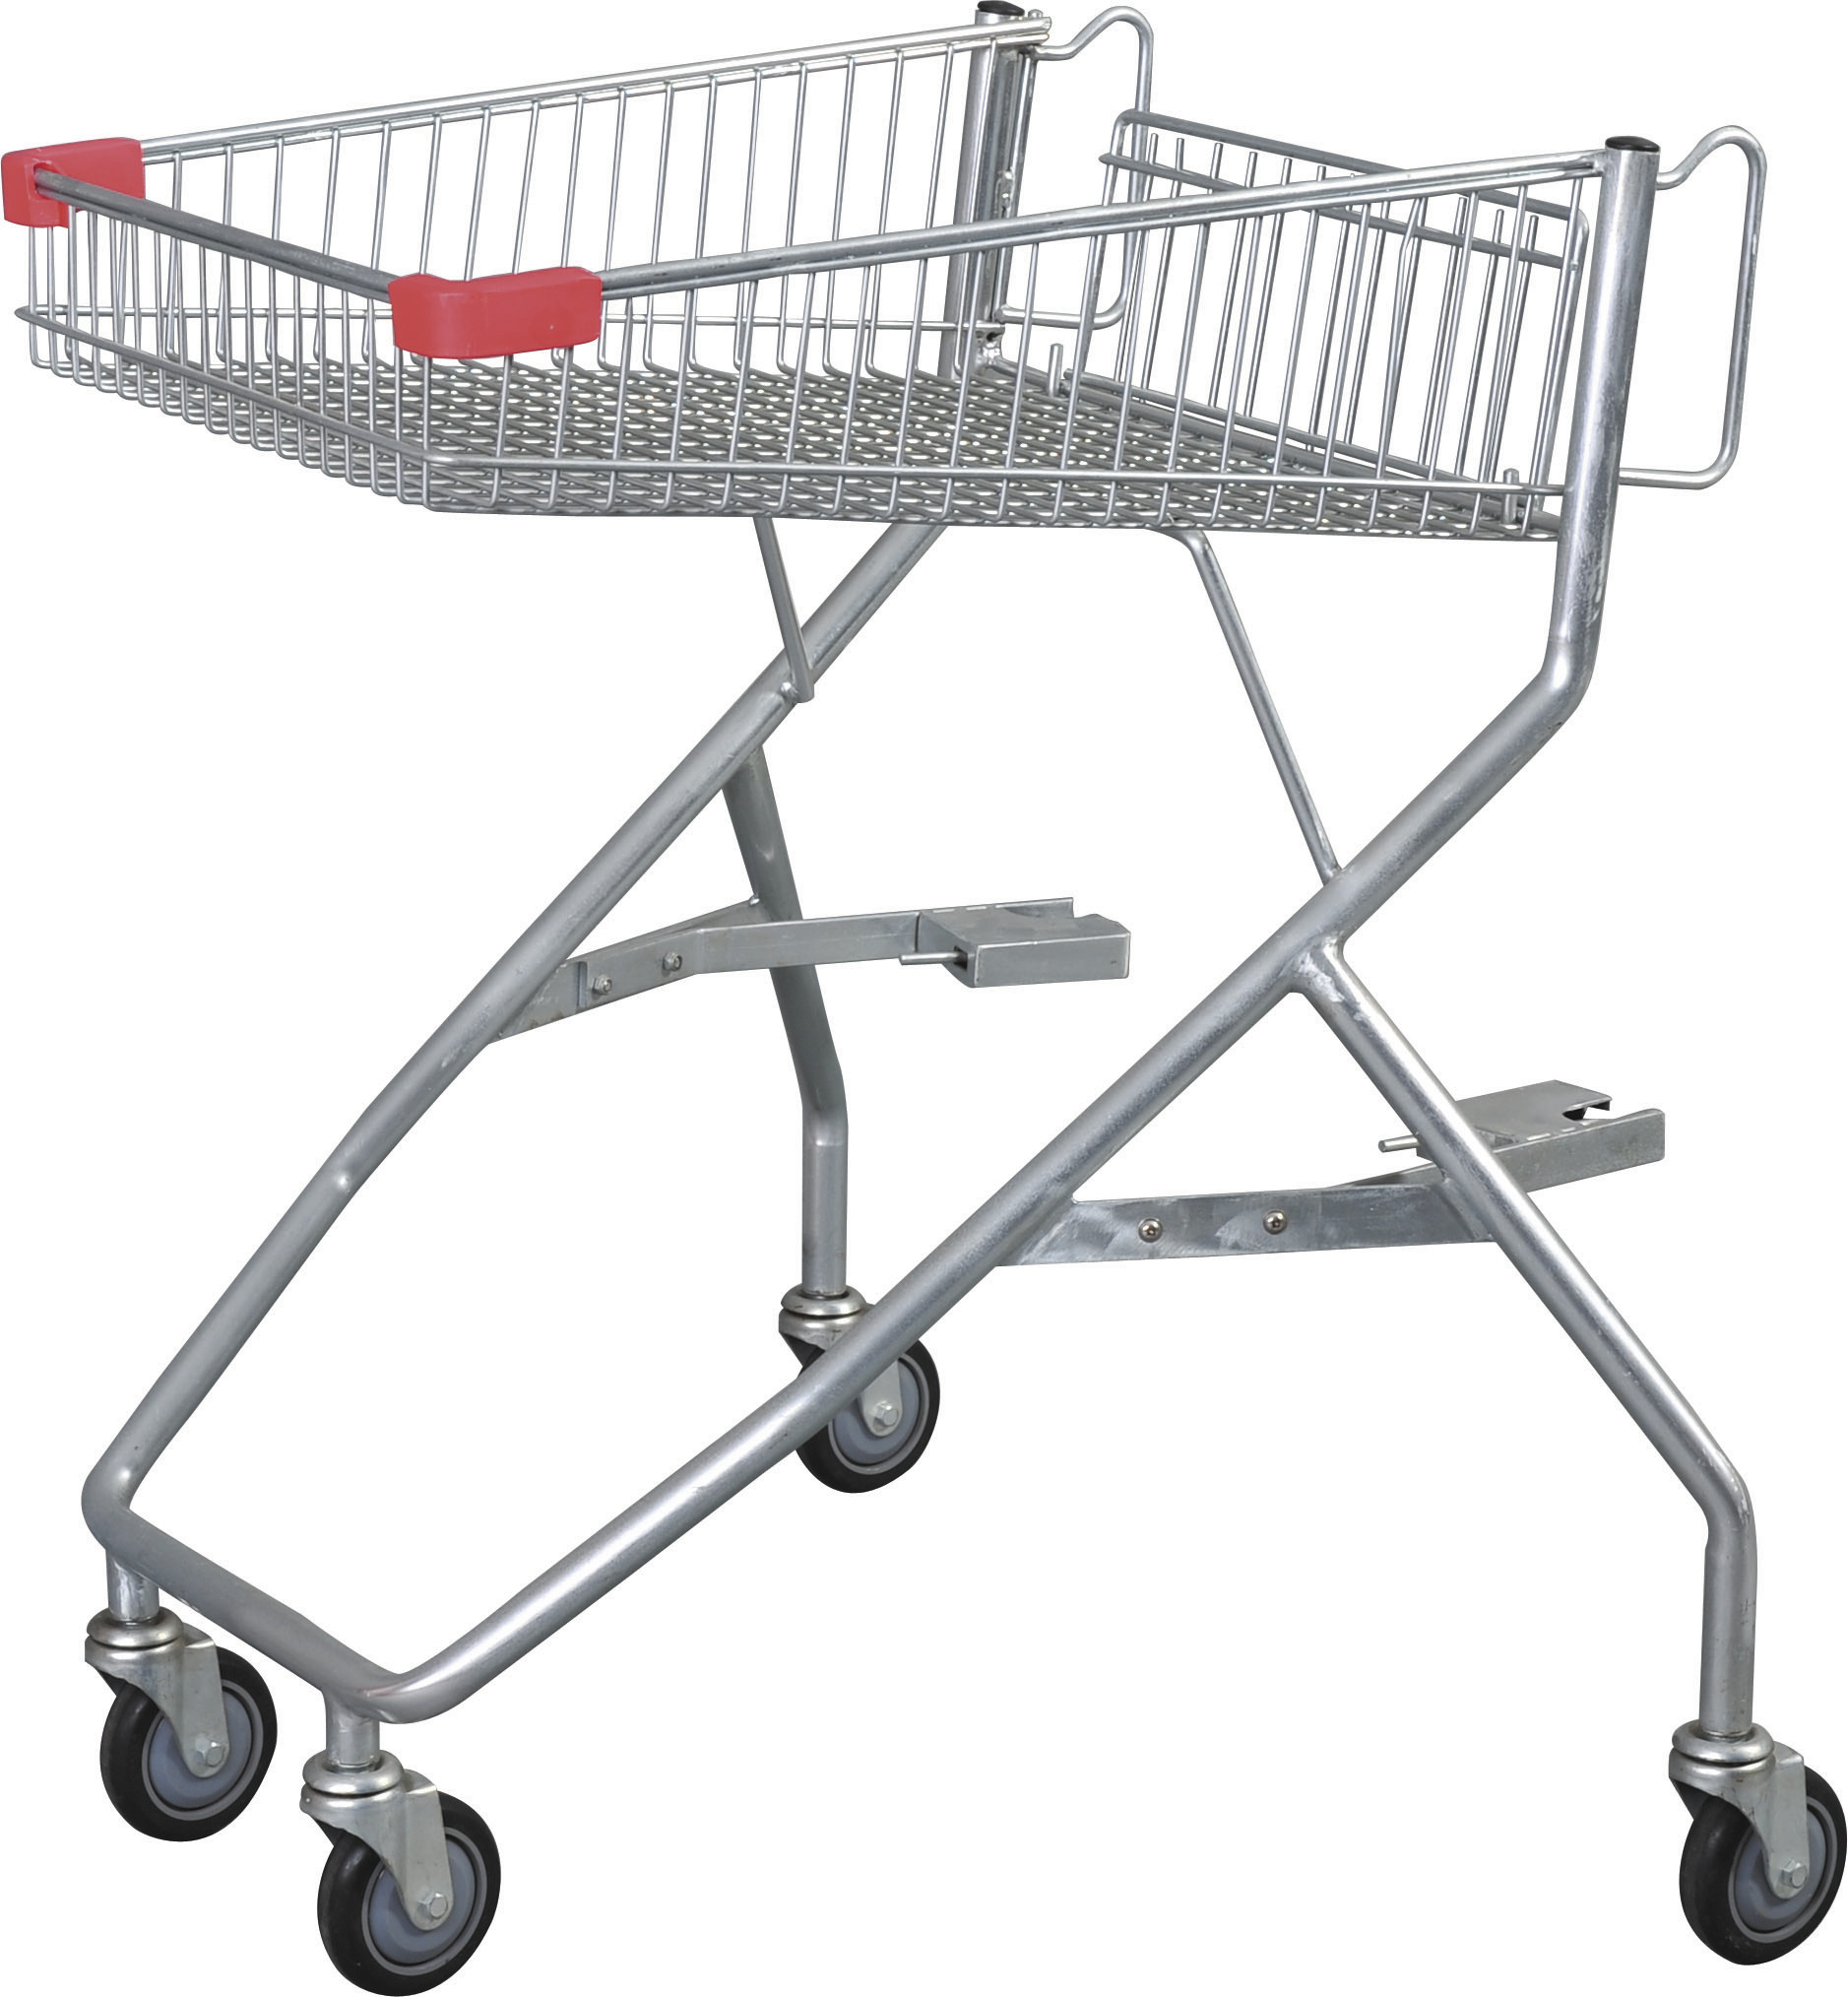 80L -  120L Lower Metal Basket Disabled Shopping Trolley For Wheel Chairs